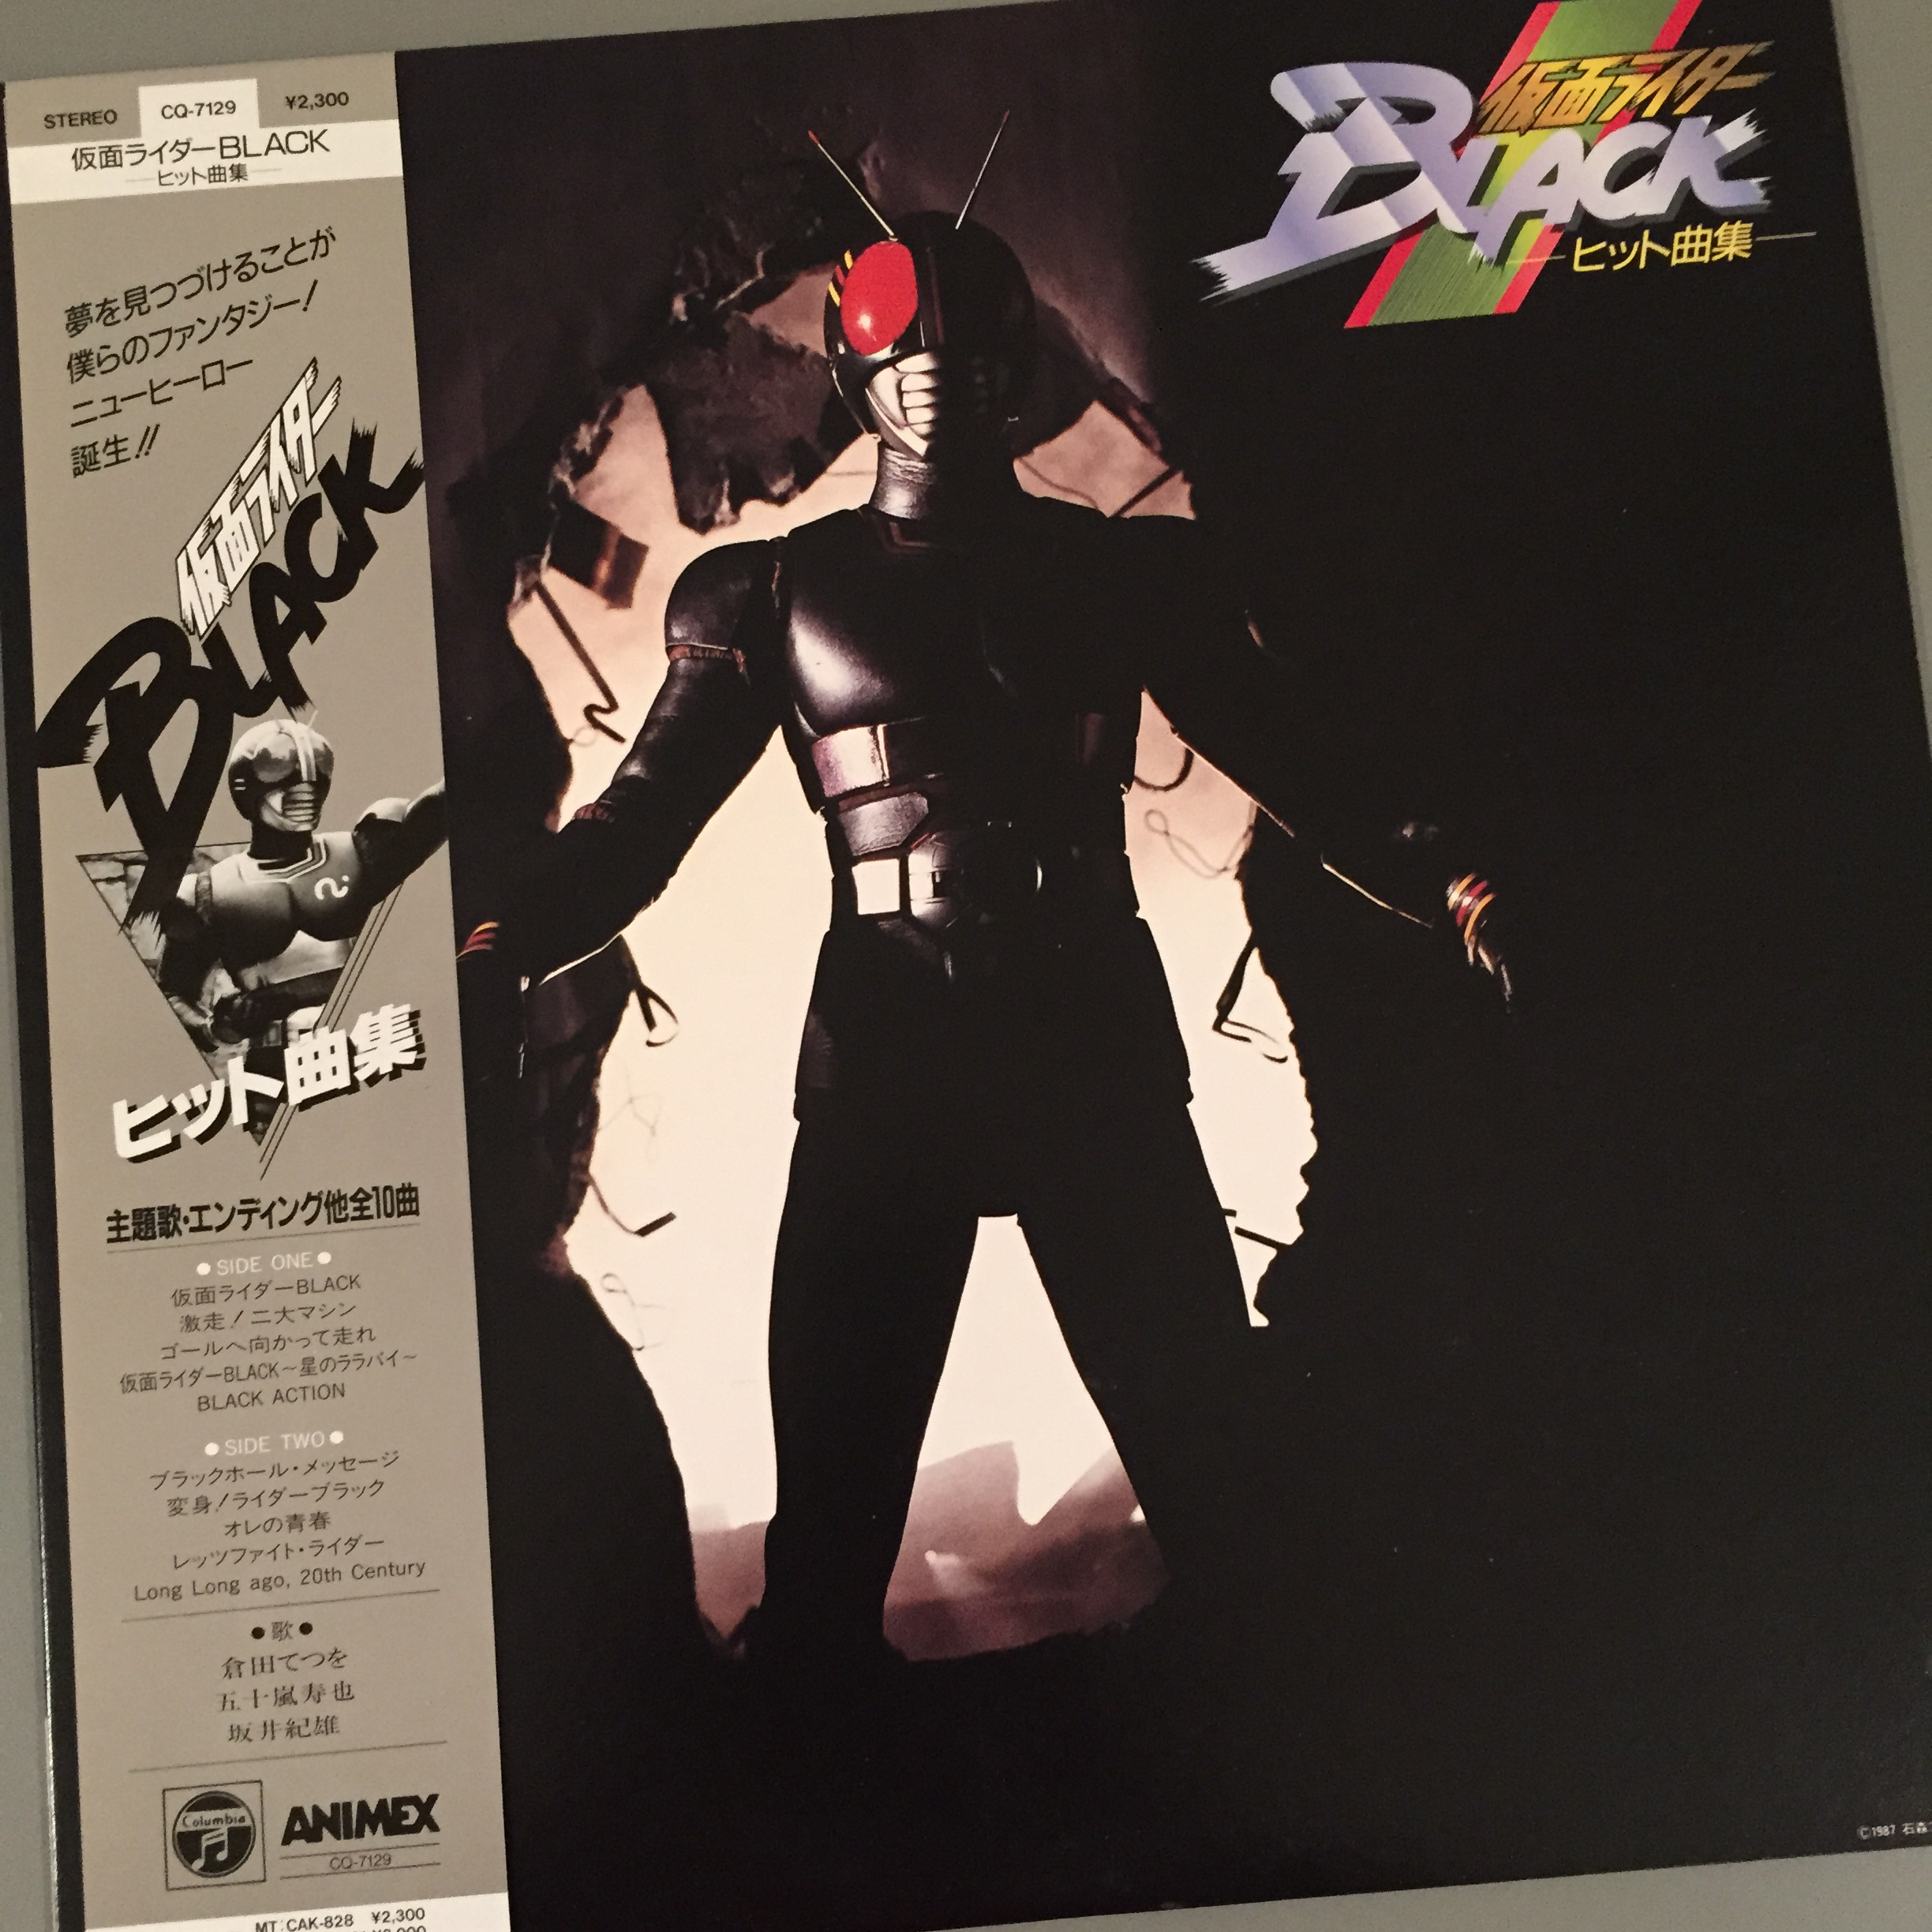 Kamen rider black hit songs cq 7129 1988 record for jack for 1988 hit songs